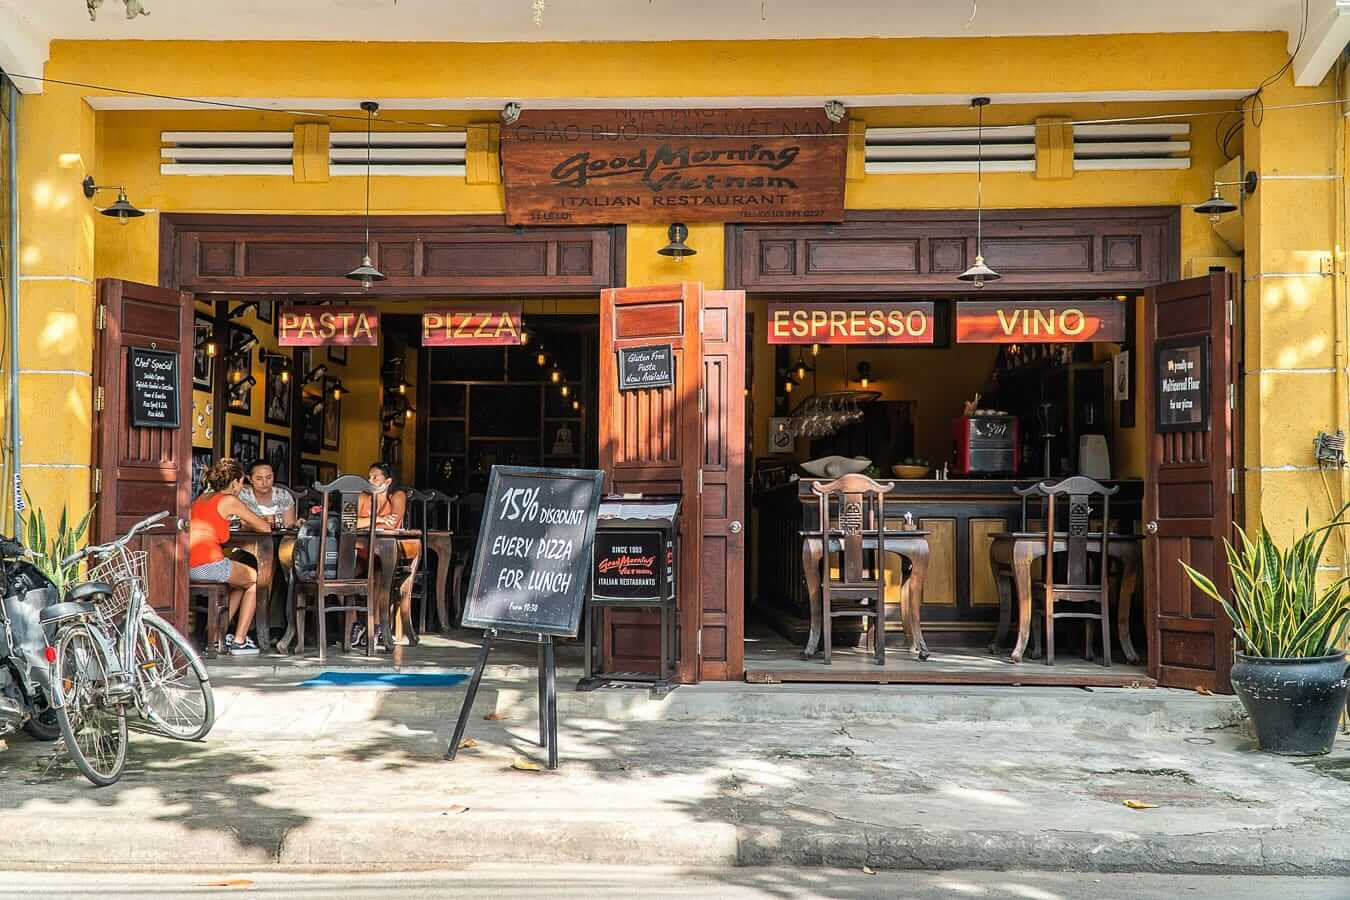 Good Morning Vietnam: Western Hoi An Restaurants